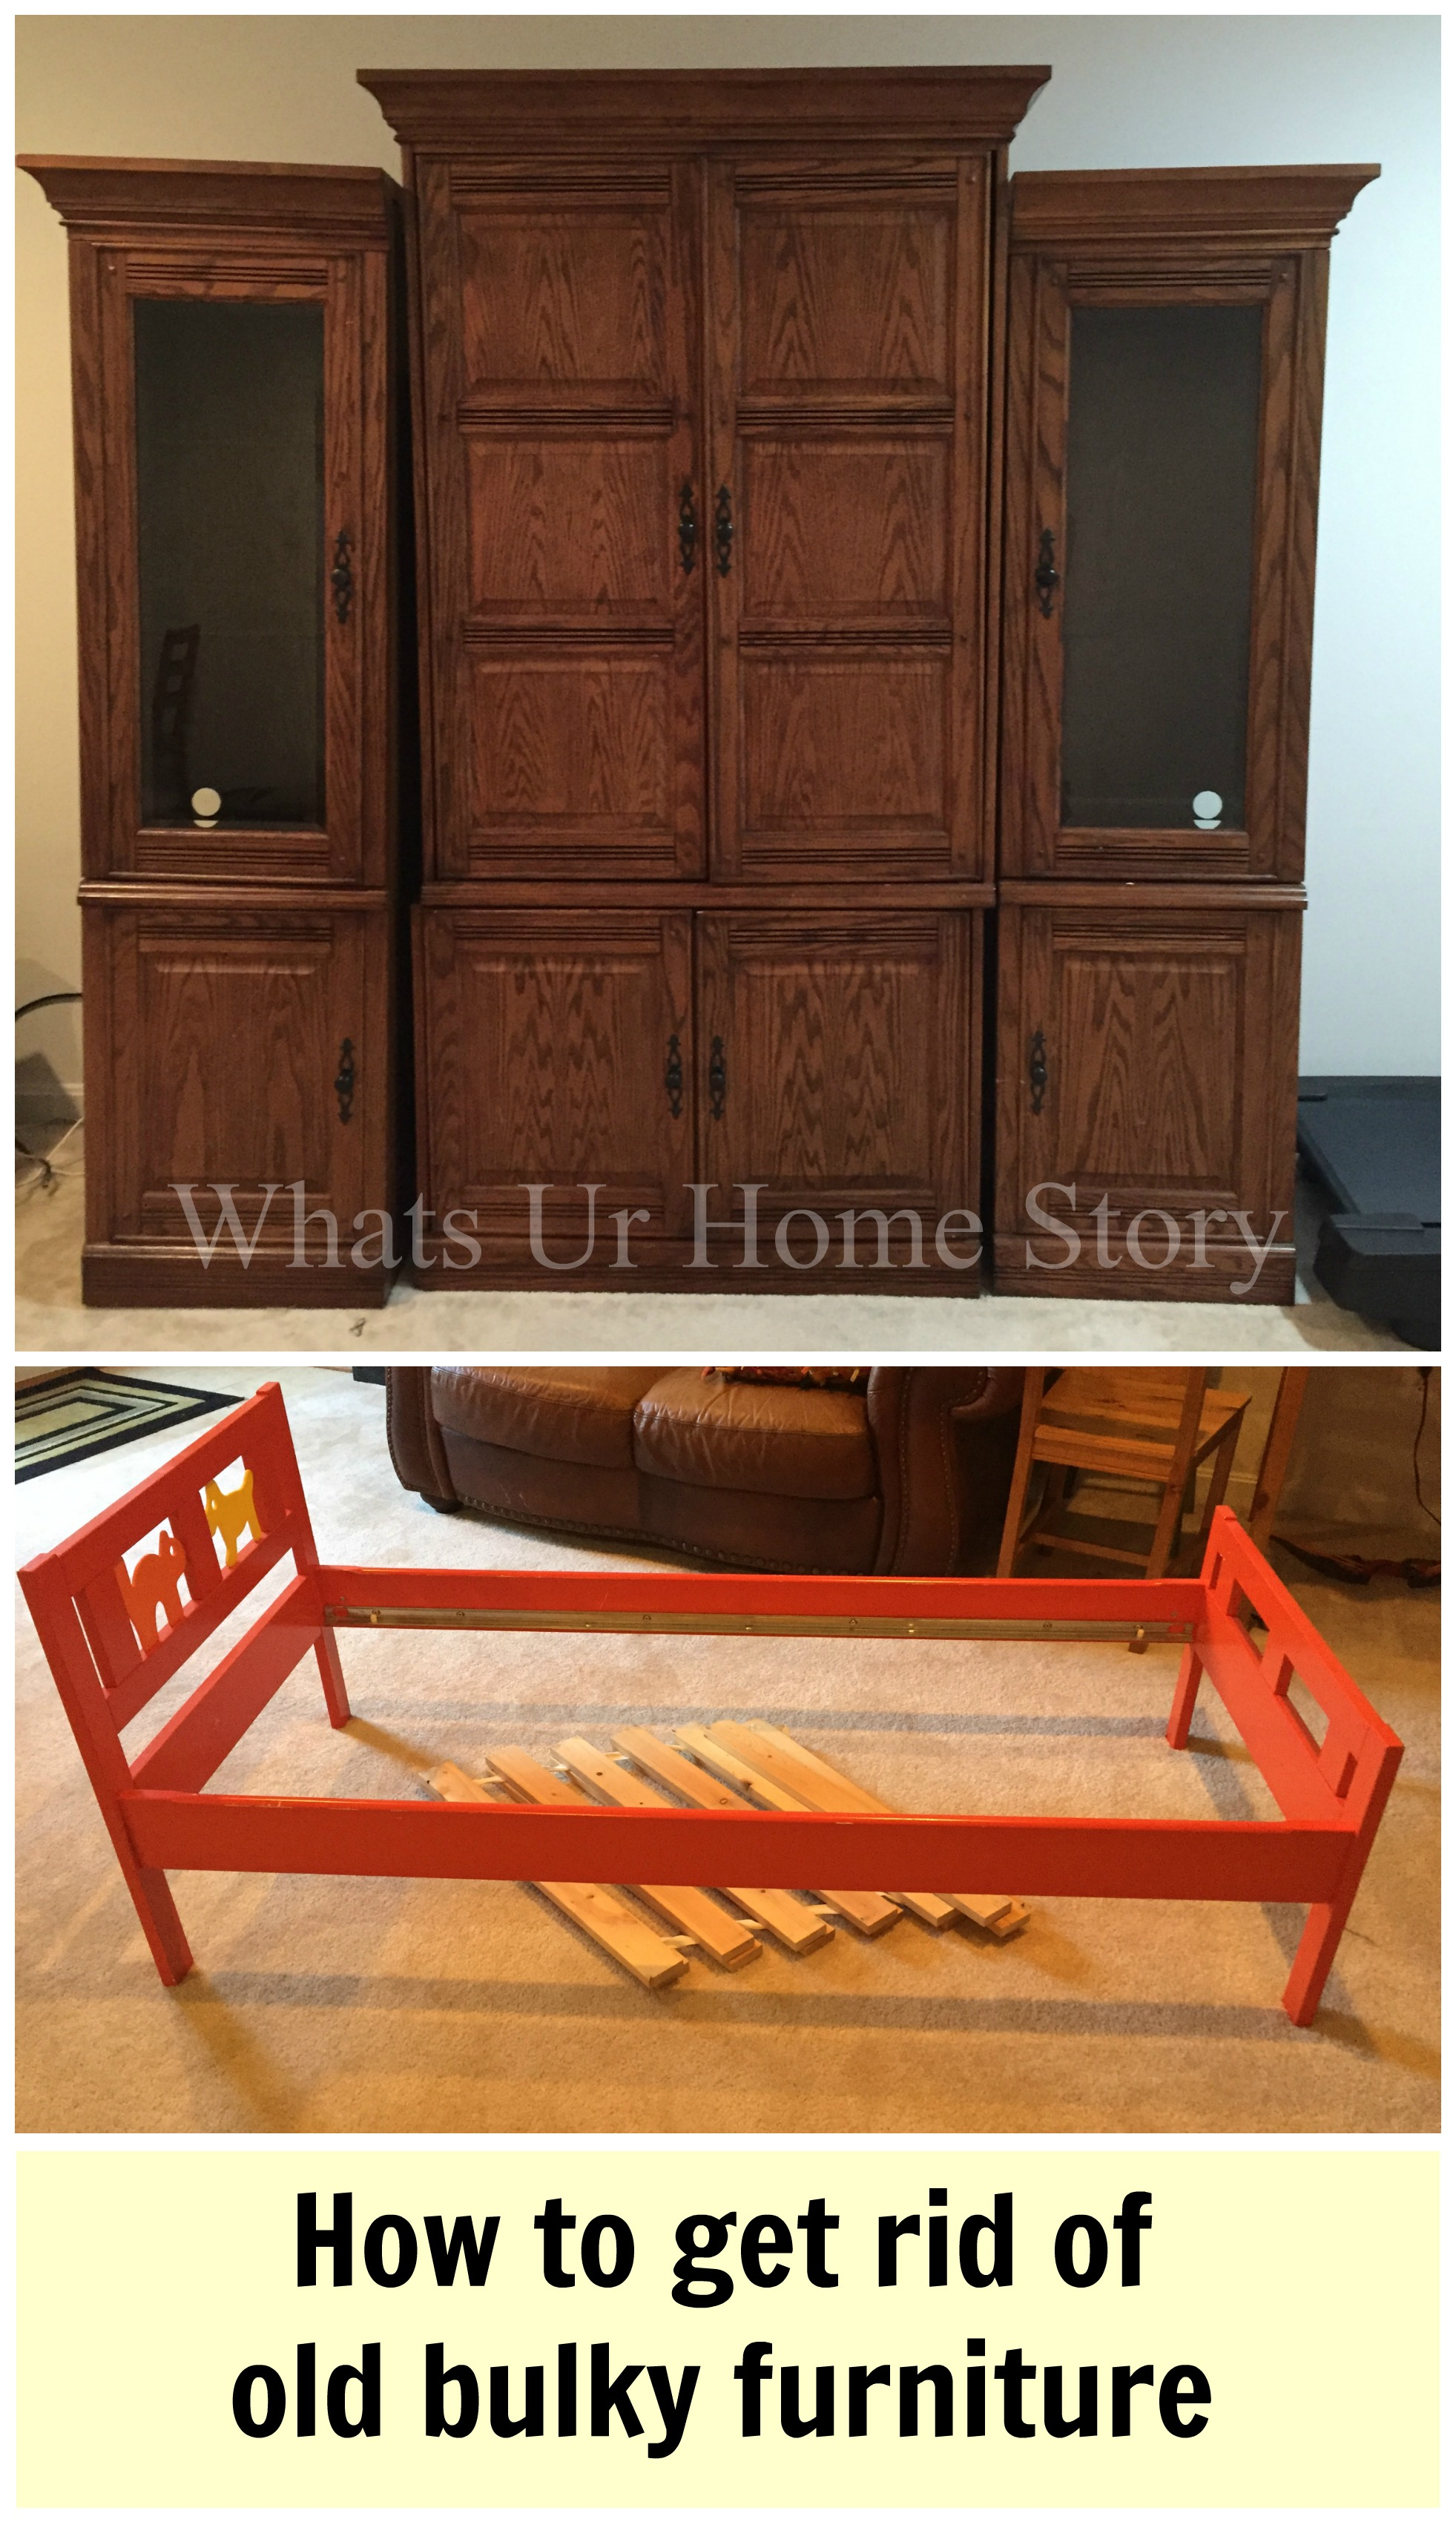 How to Get Rid of Old Furniture | Whats Ur Home Story Old Home Furniture on old home walls, old home decorations, old home materials, old home clothing, old home interiors, old home wine cellars, old home buildings, old home design, old home computers, old home office, old home security systems, old home decor, old home games, old home bathroom, old home security panels, old home electronics, old home cabinets, old home cell phones, old home boiler, old home hotels,